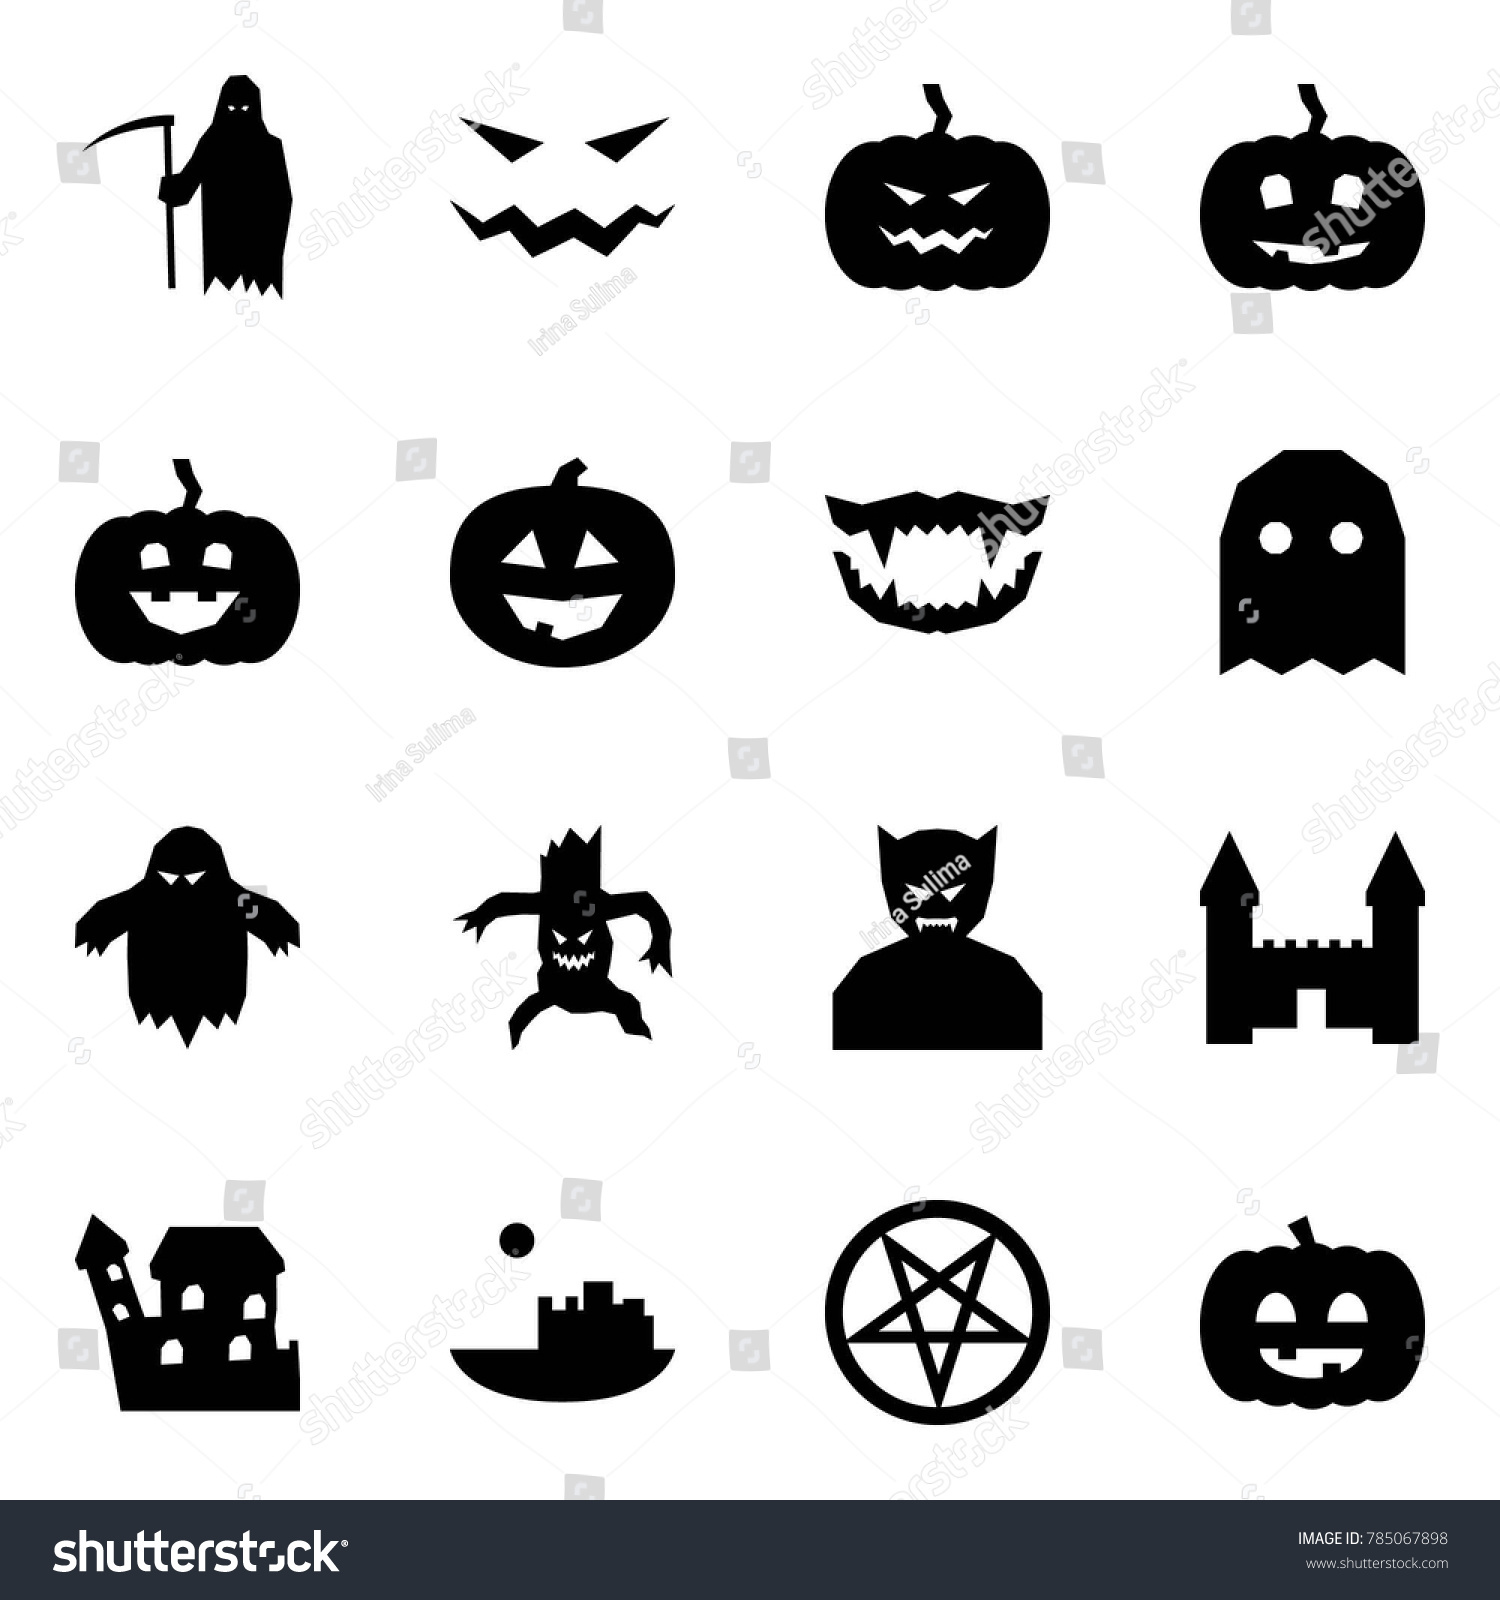 hight resolution of origami style icon set grim reaper vector scary face pumpkin monster jaws